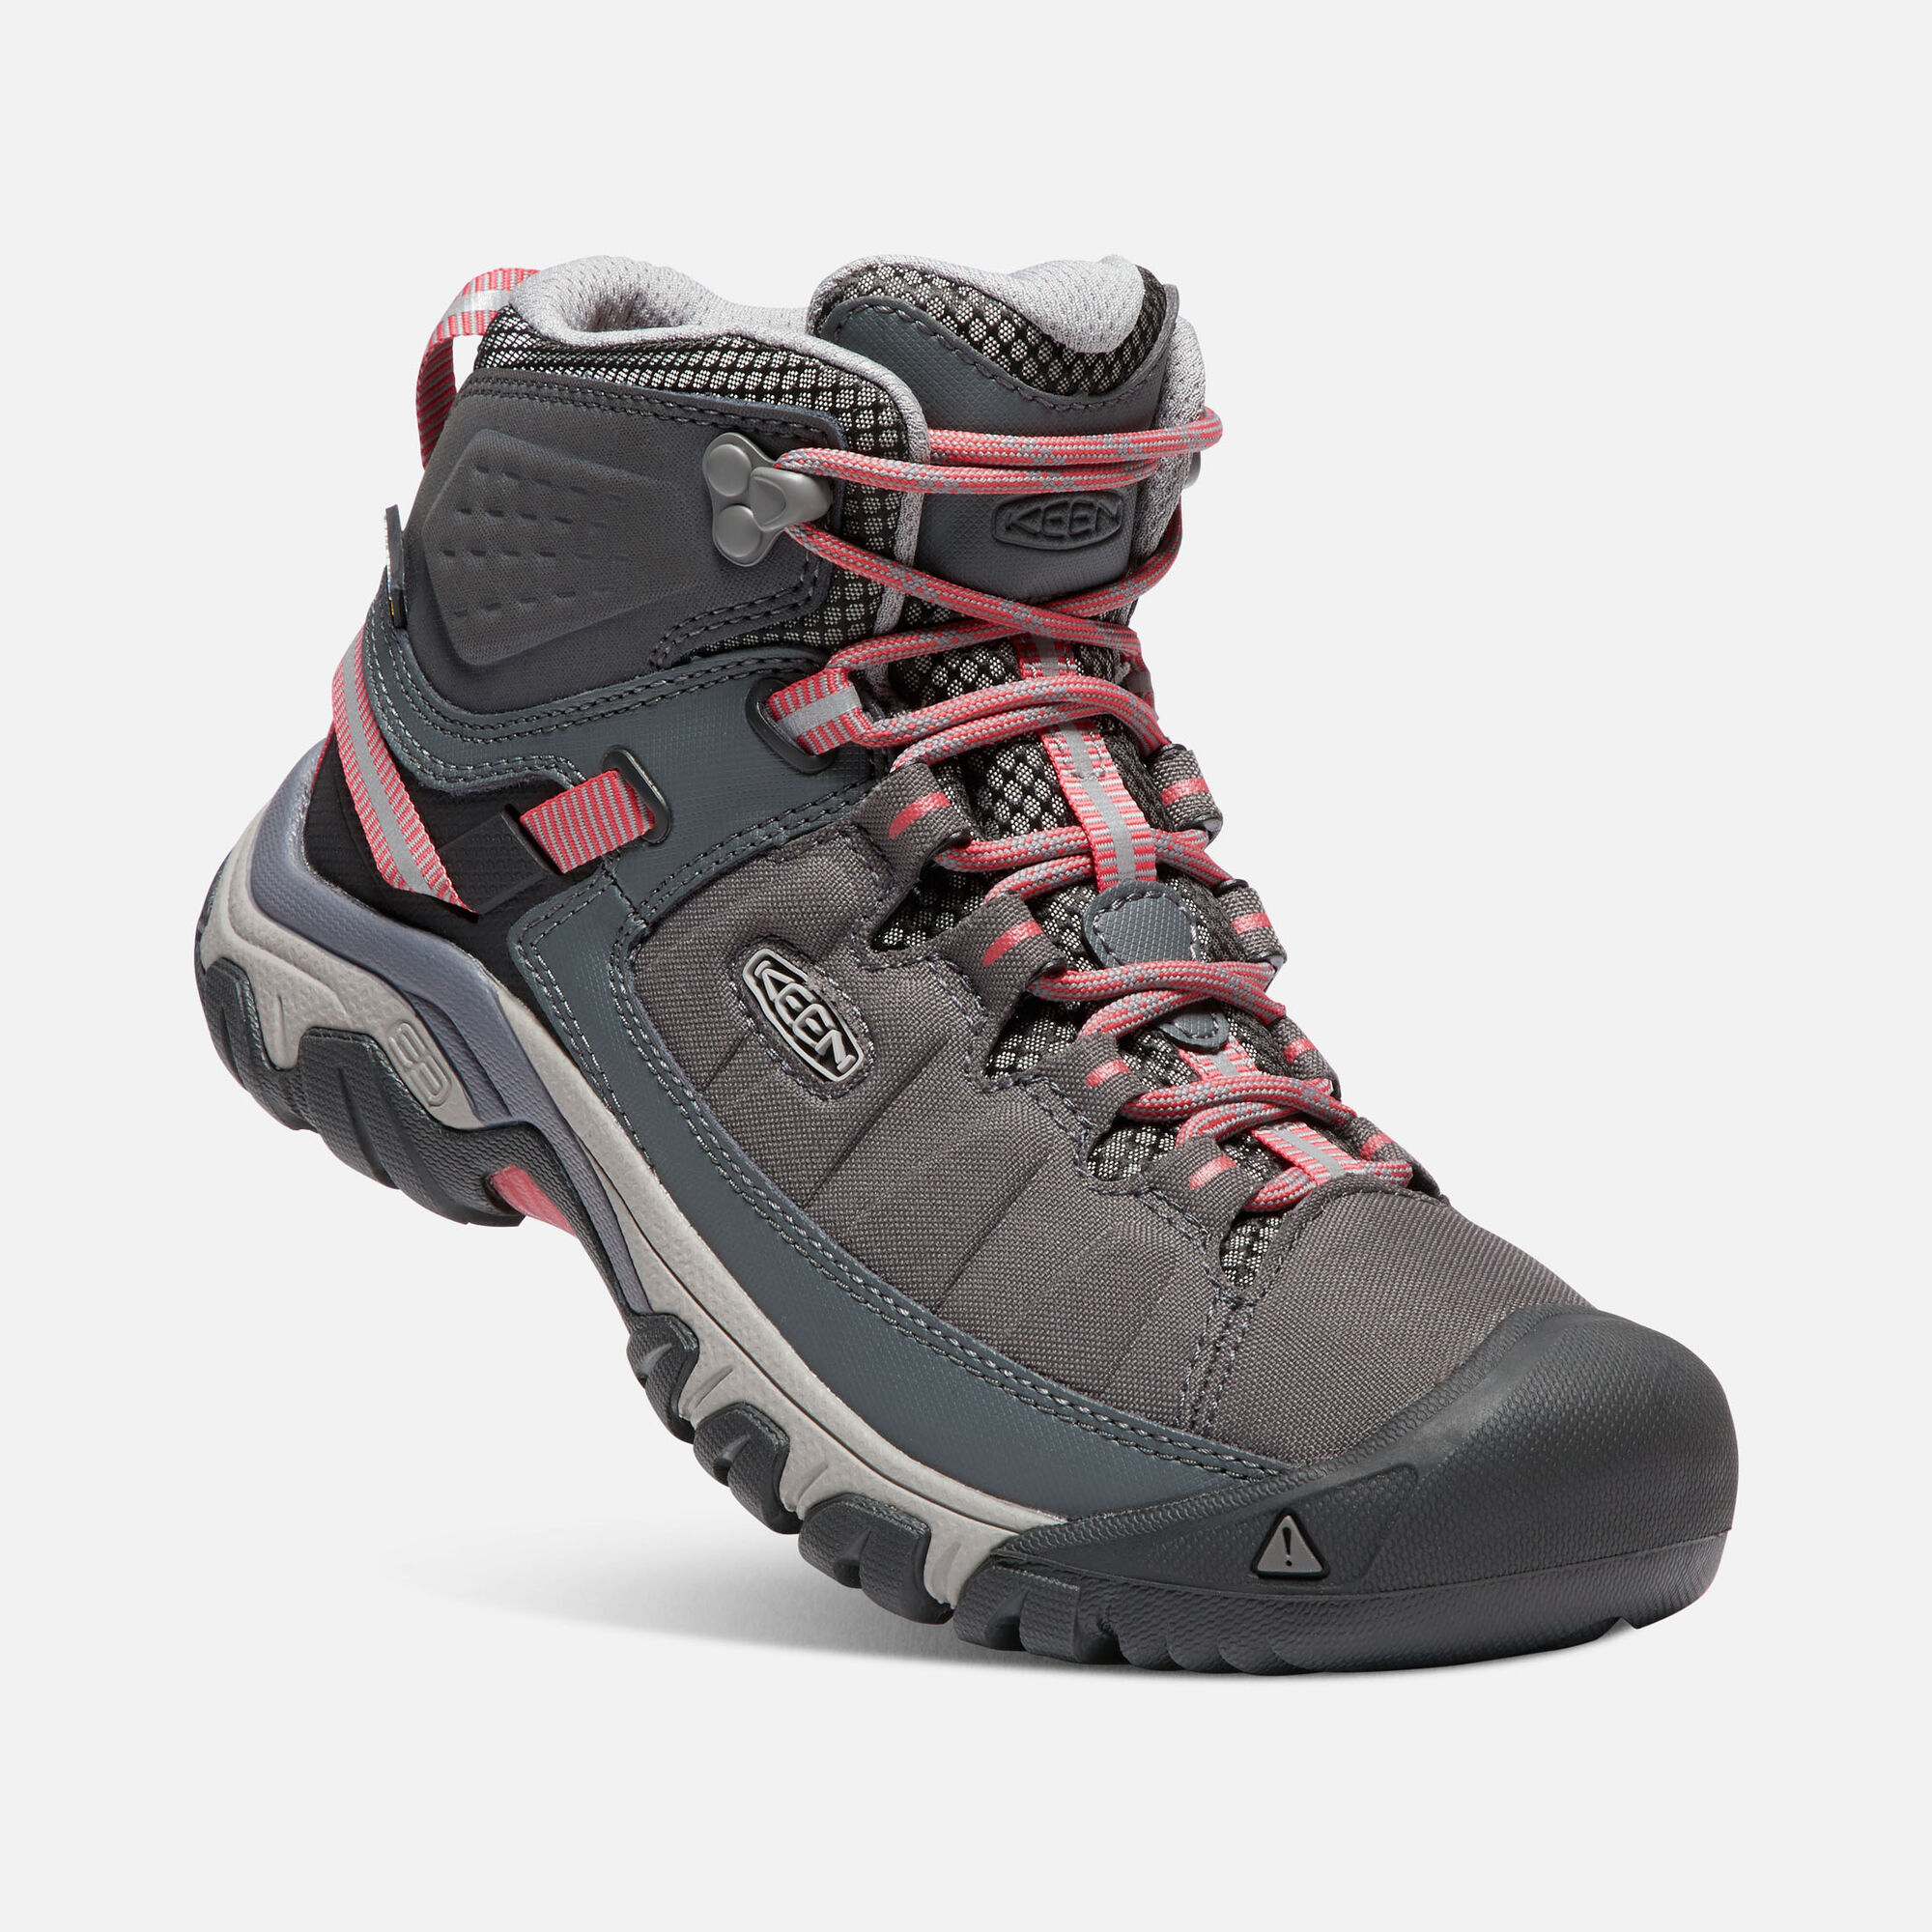 e3a41aa4ba6f WOMEN S TARGHEE EXP WATERPROOF MID HIKING BOOTS in MAGNET TEABERRY - small  view.